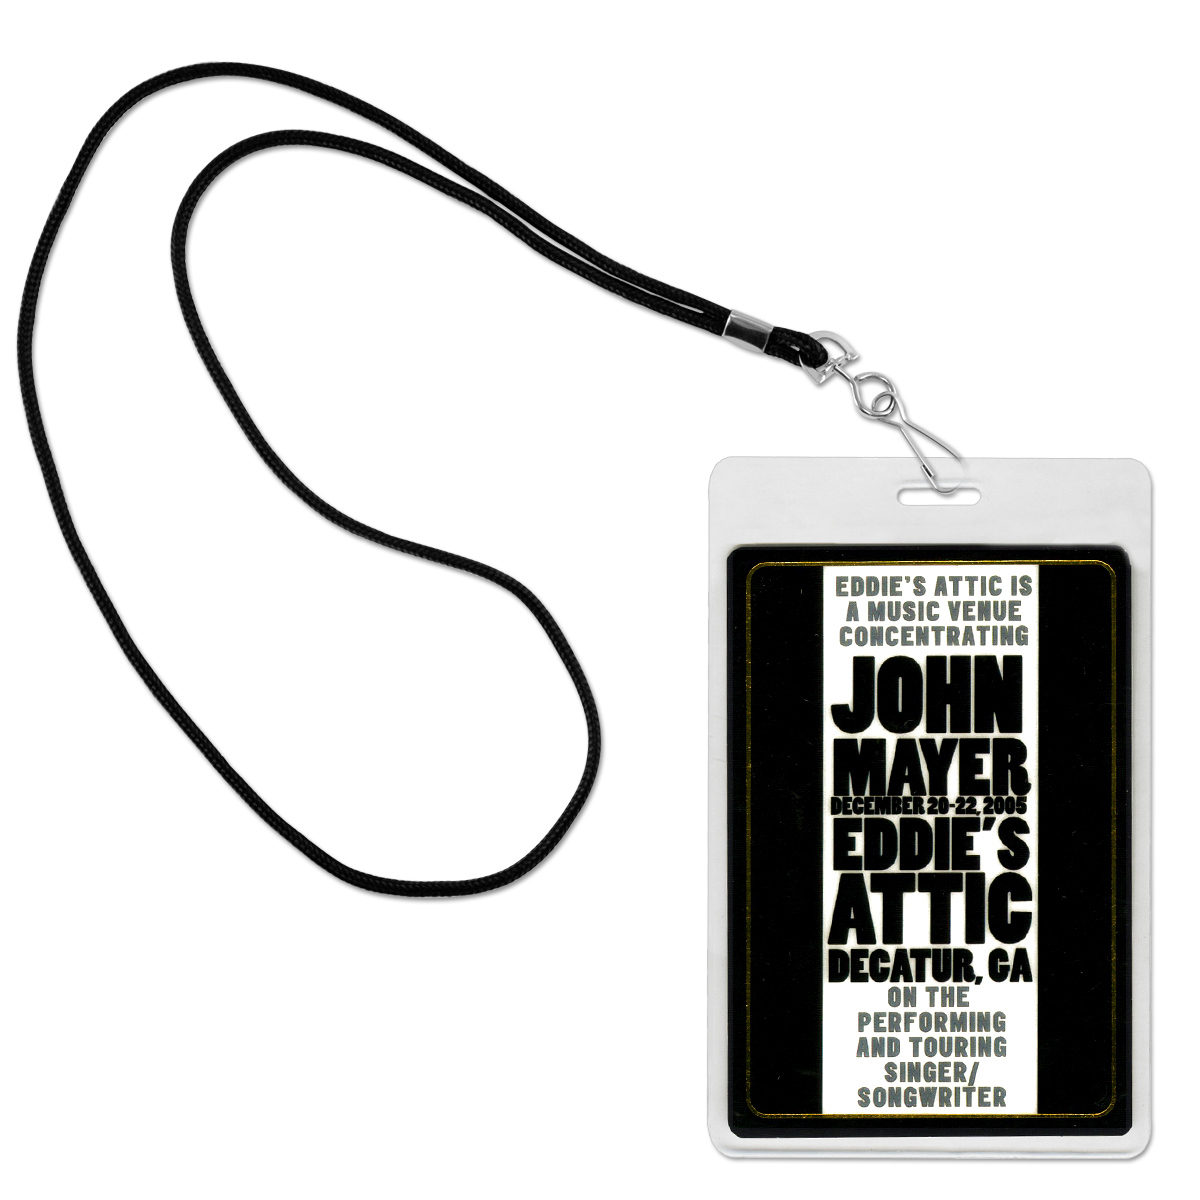 John Mayer - Eddie's Attic Laminate